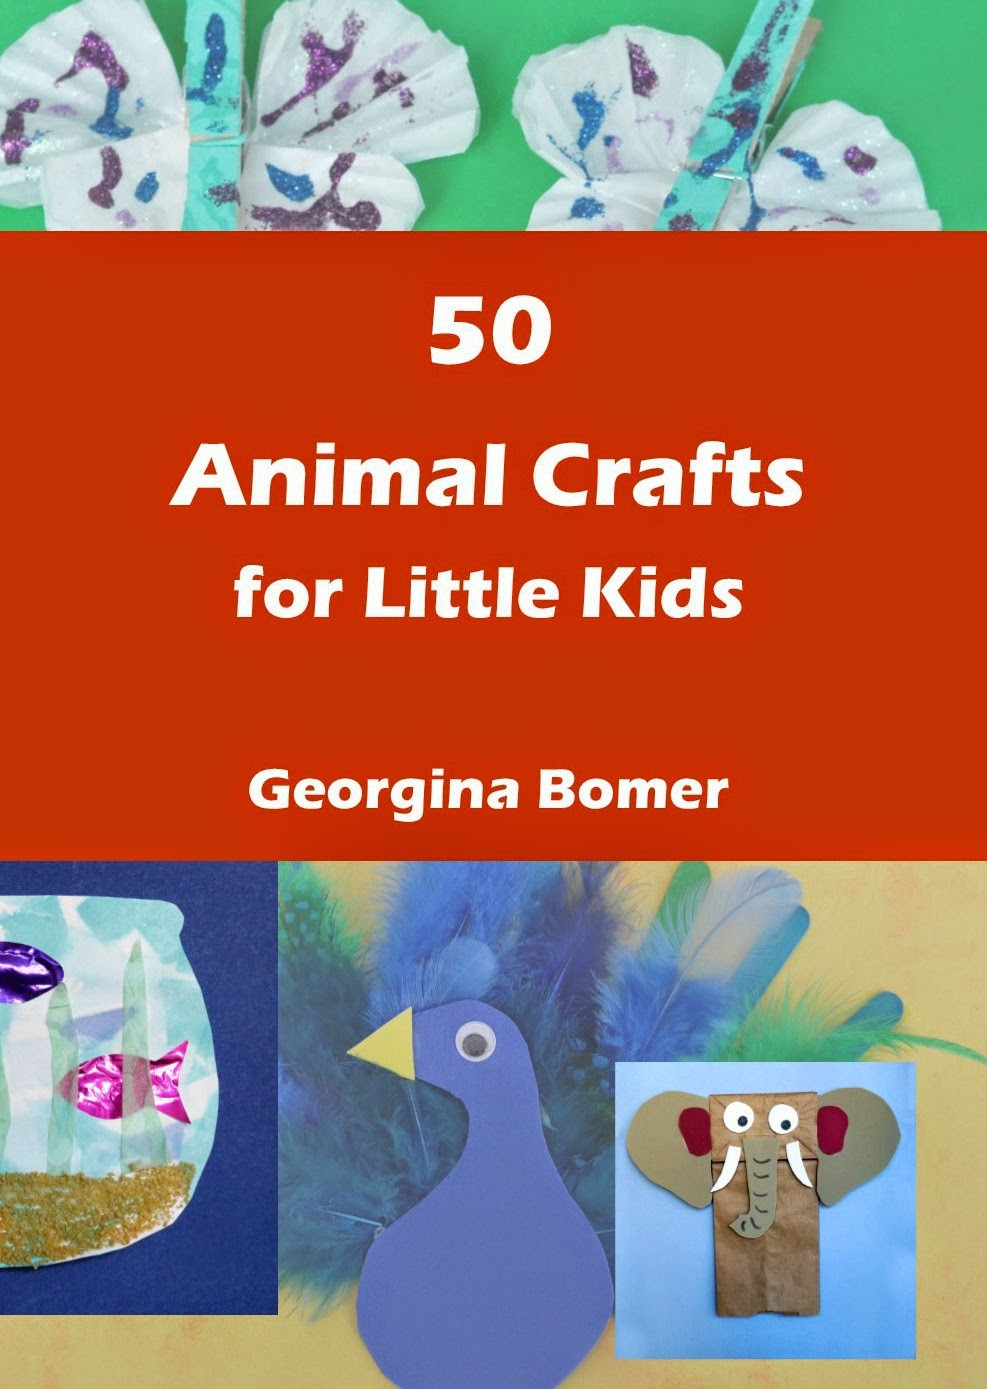 Best ideas about Crafts For Little Kids . Save or Pin Crafty Moms 50 Animal Crafts for Little Kids Book Now.